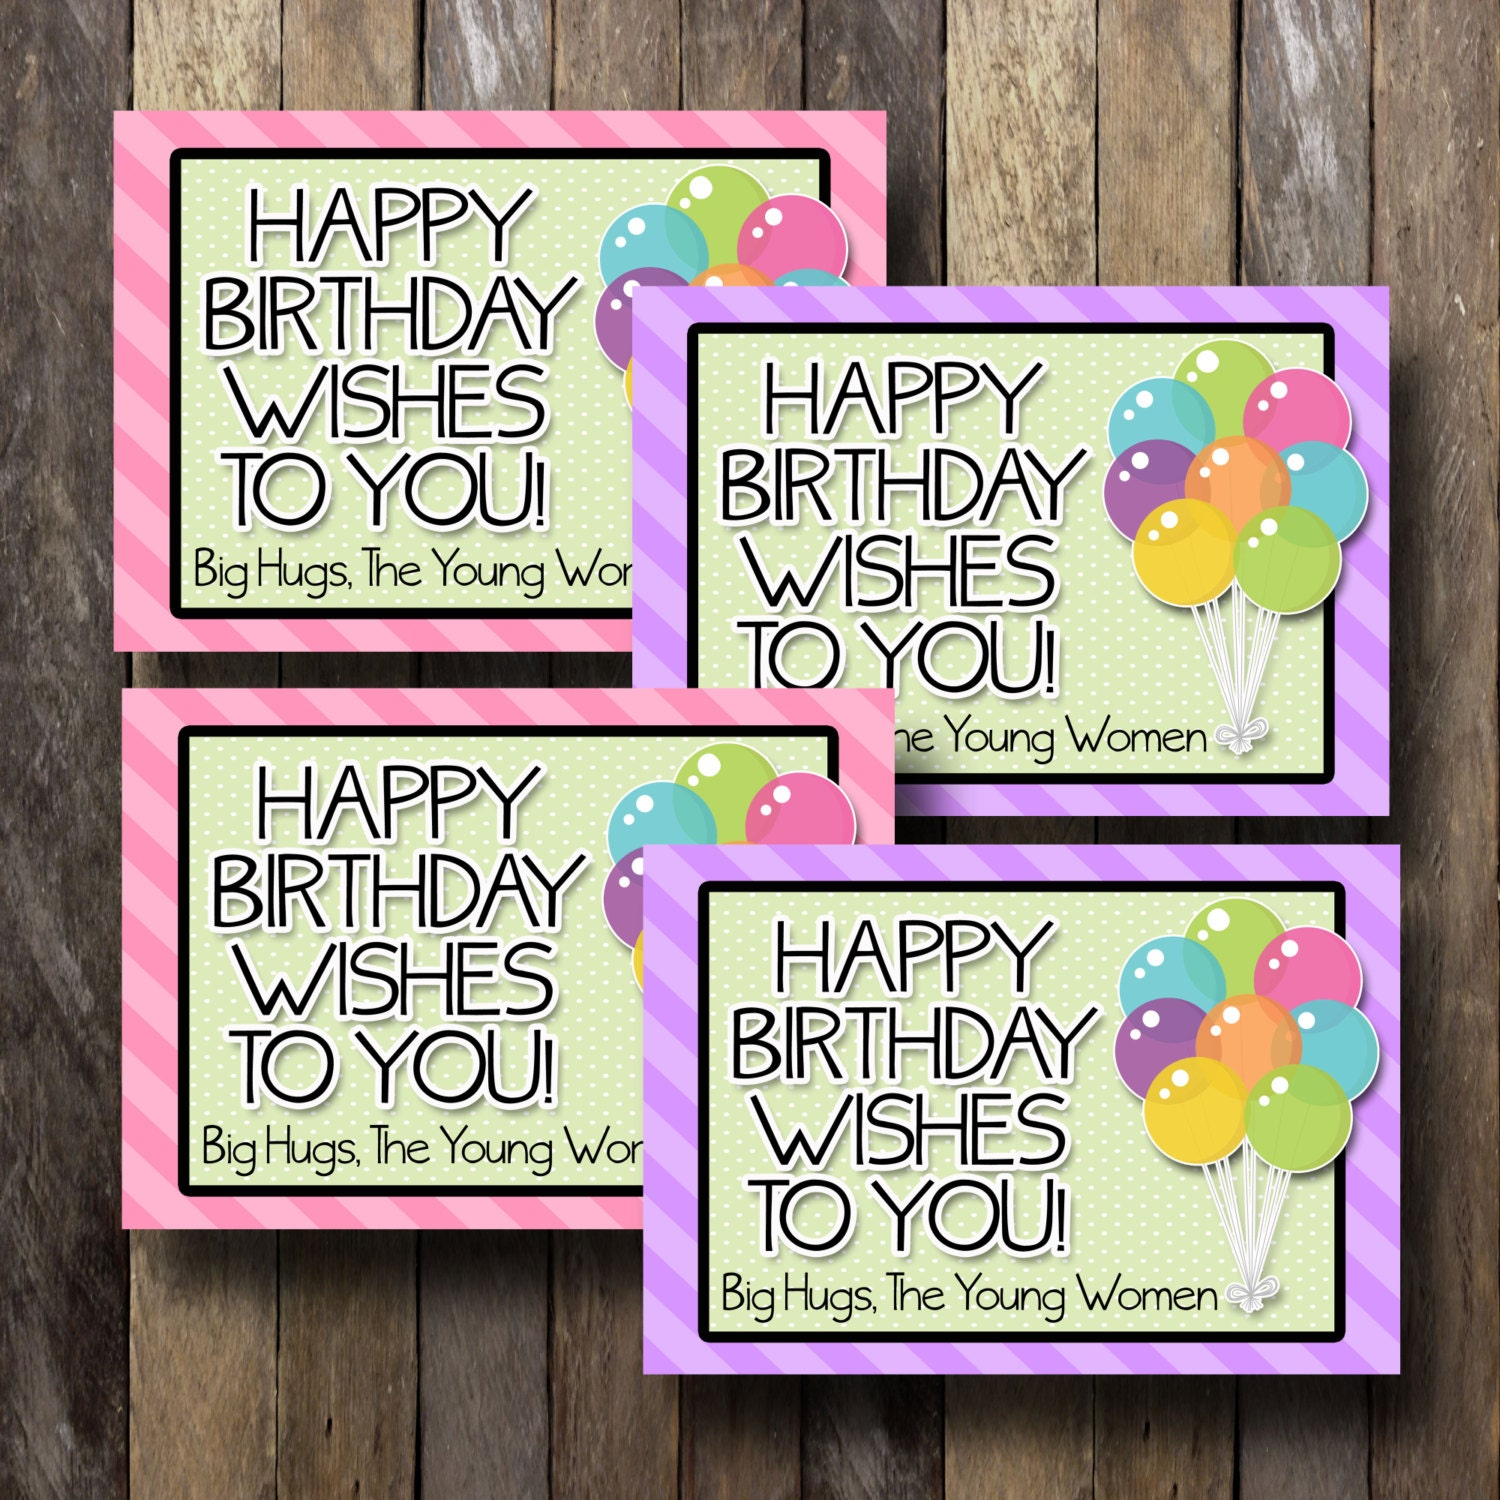 lds young women birthday cards 4 35x5 cards